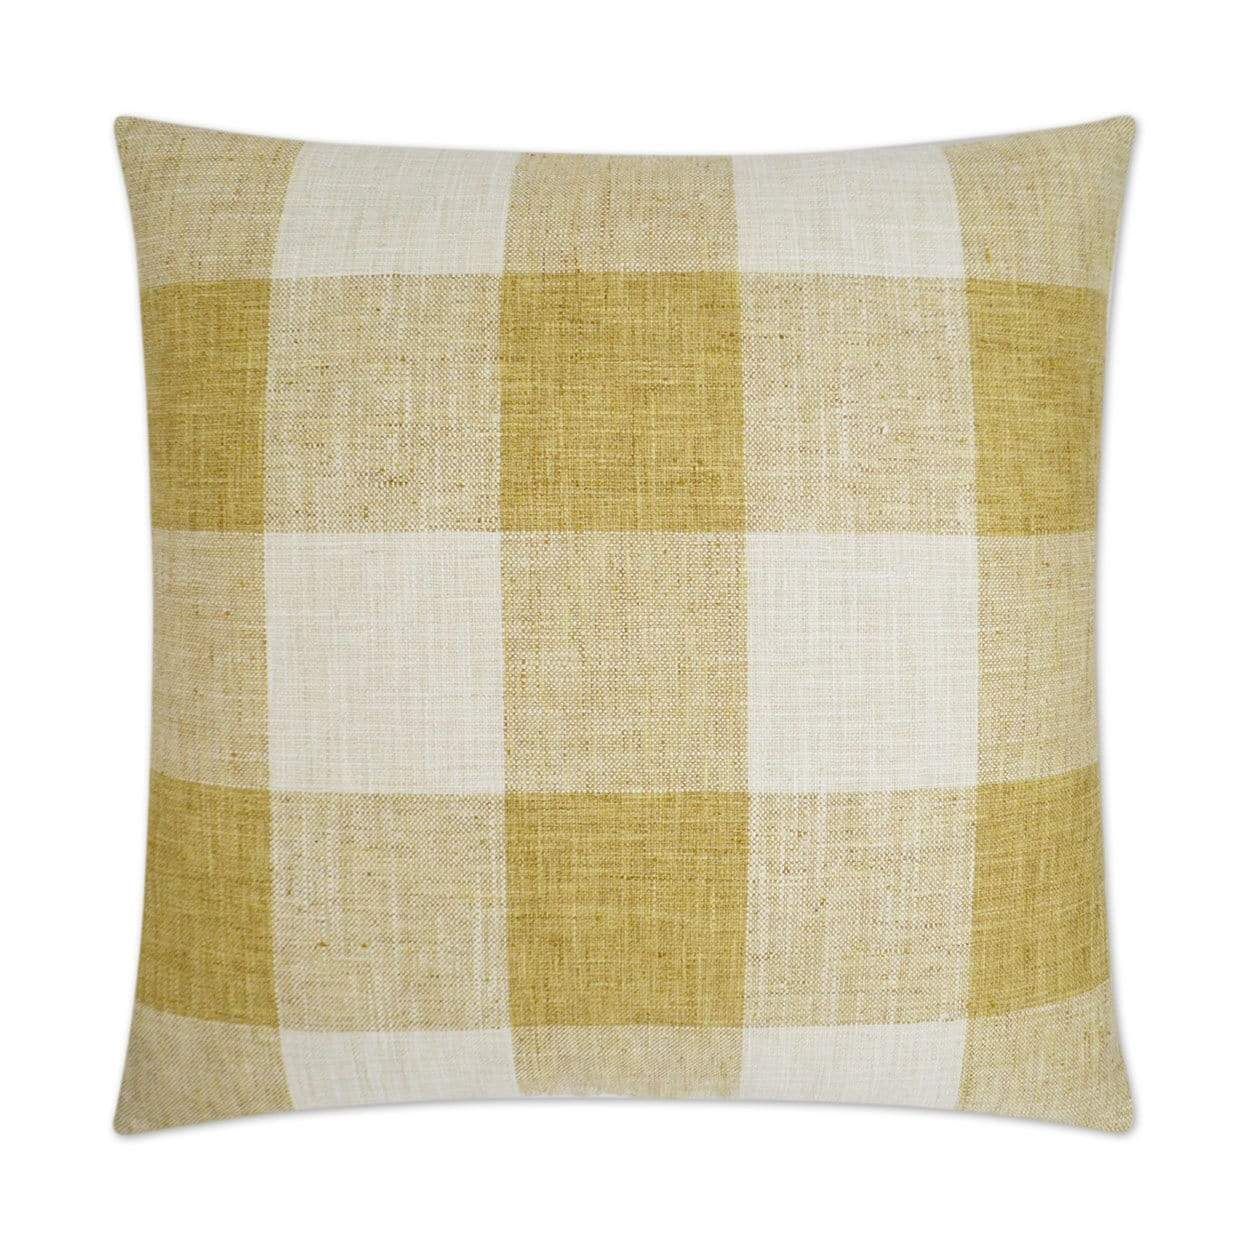 D.V. Kap D.V. Kap Check Please Pillow - Available in 3 Colors Yellow 3174-Y